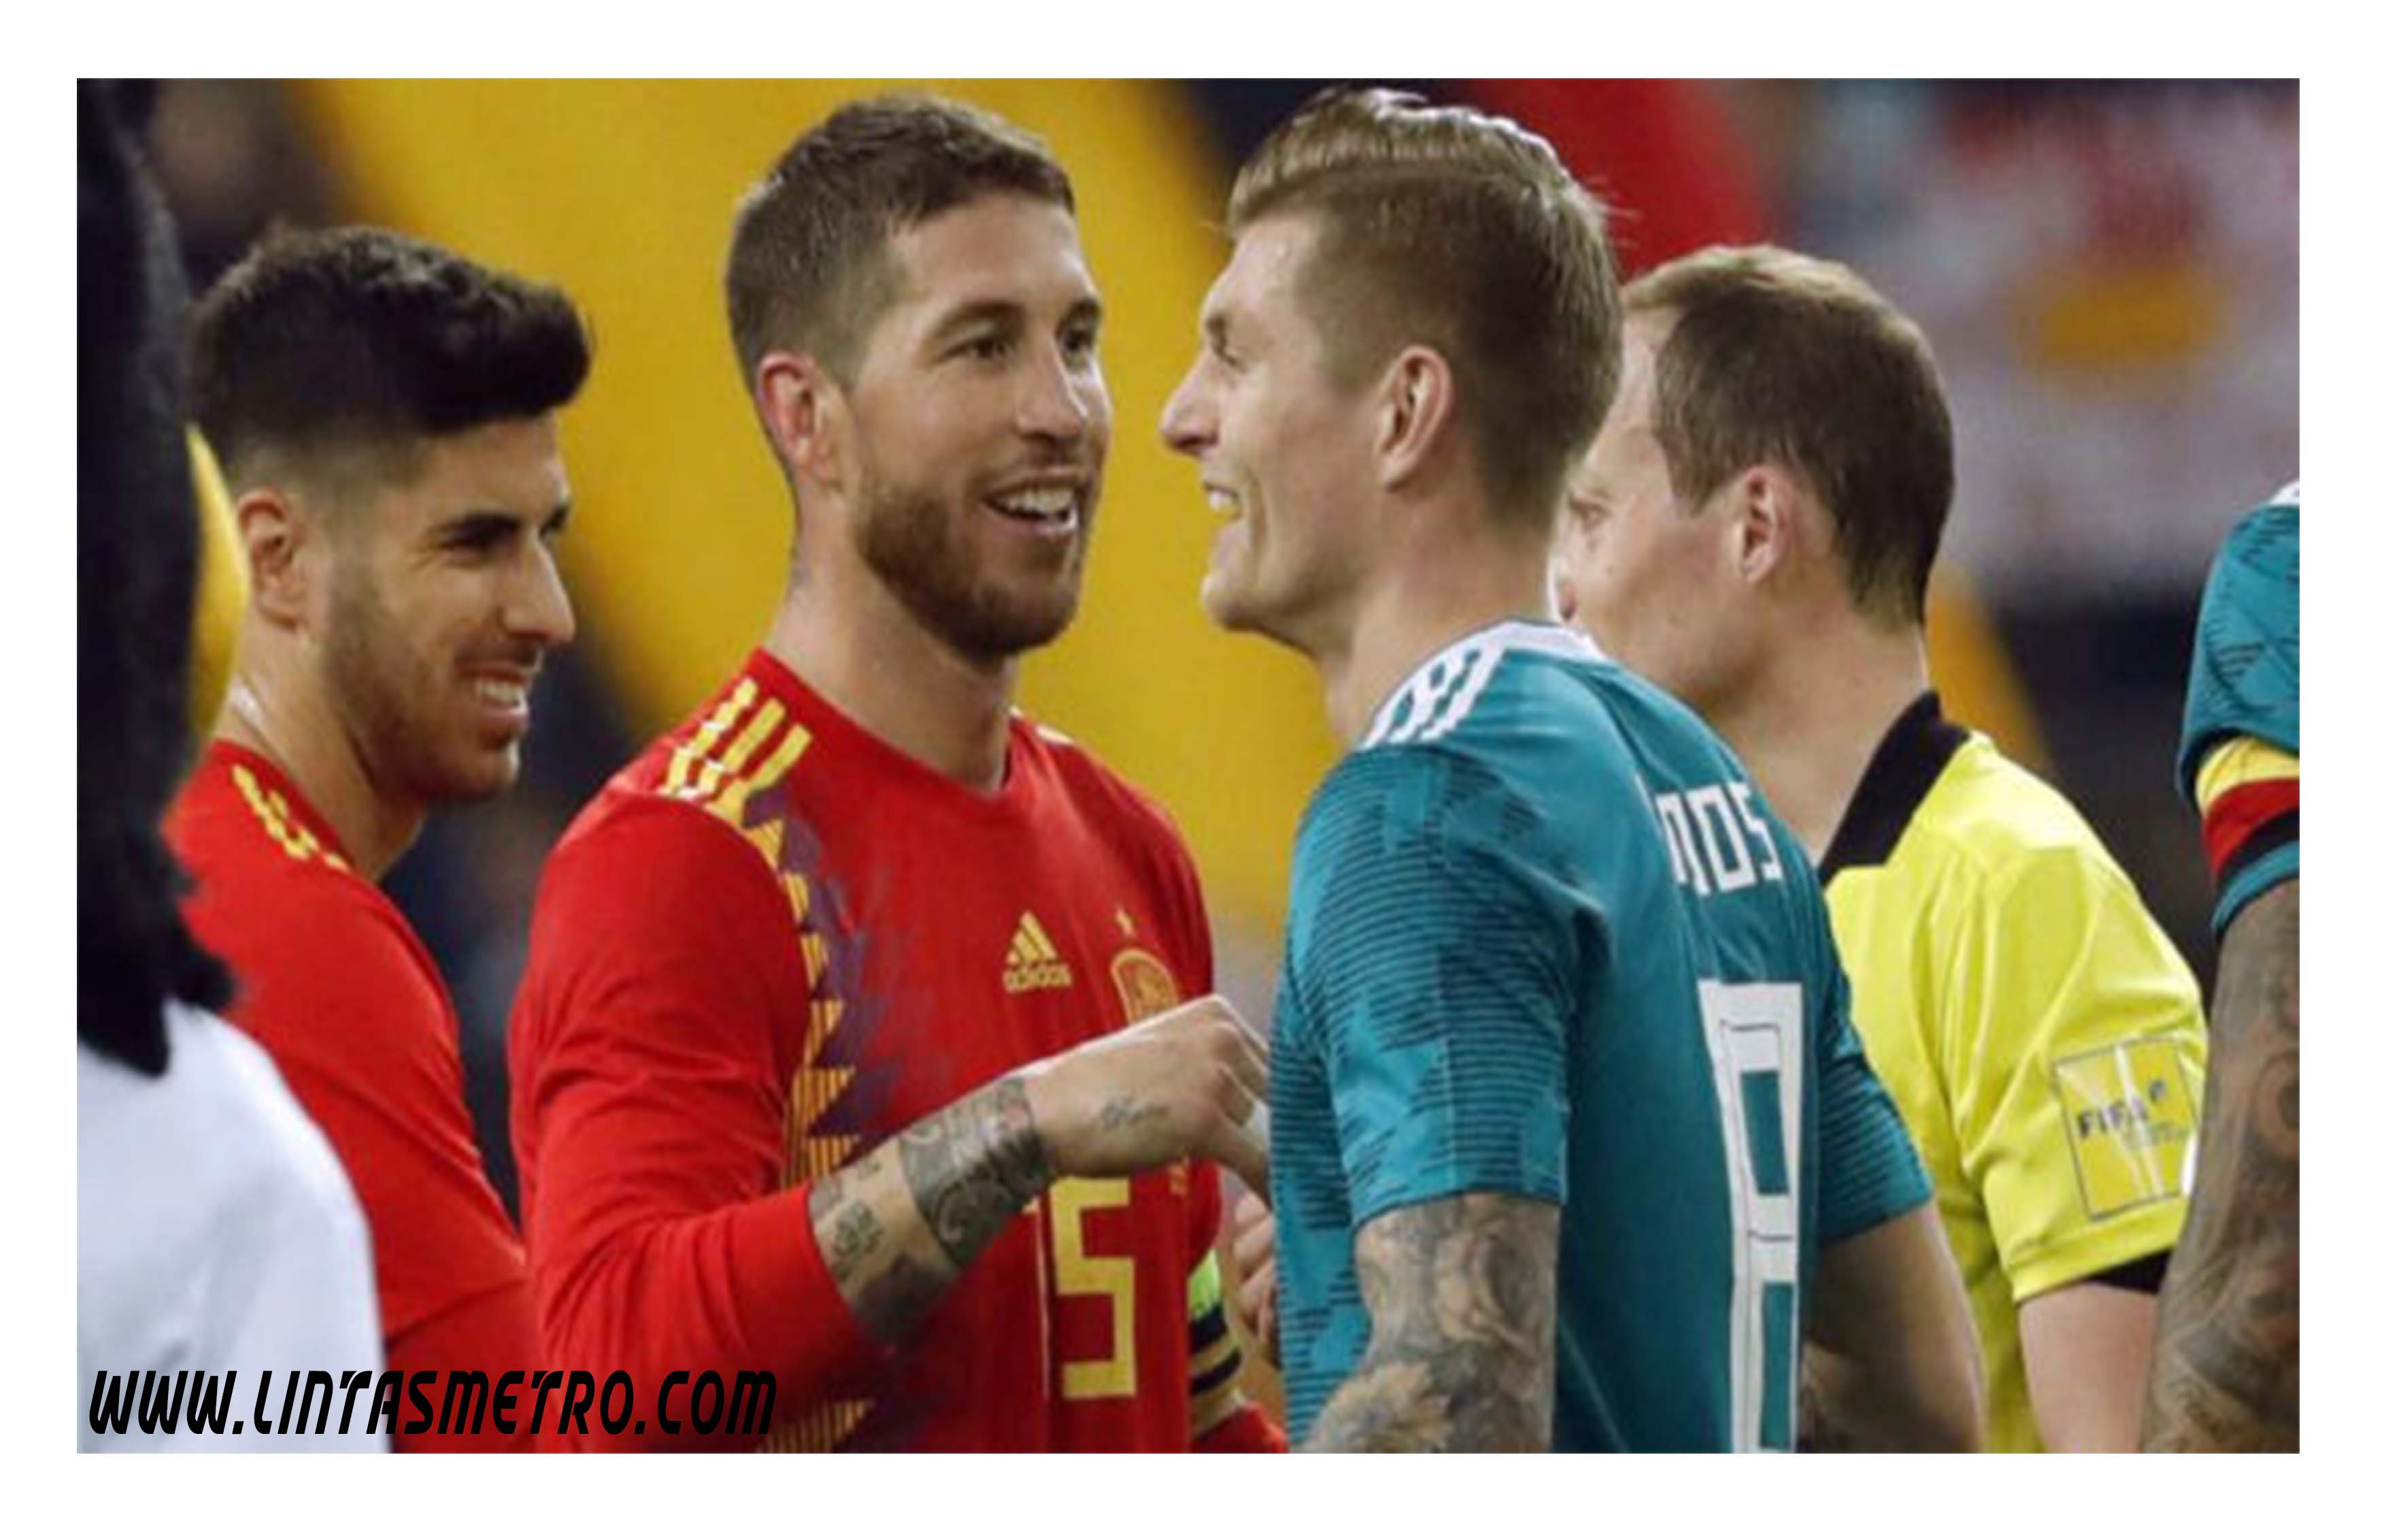 Spain vs Germany Prediksi UEFA Nations League 2020/21